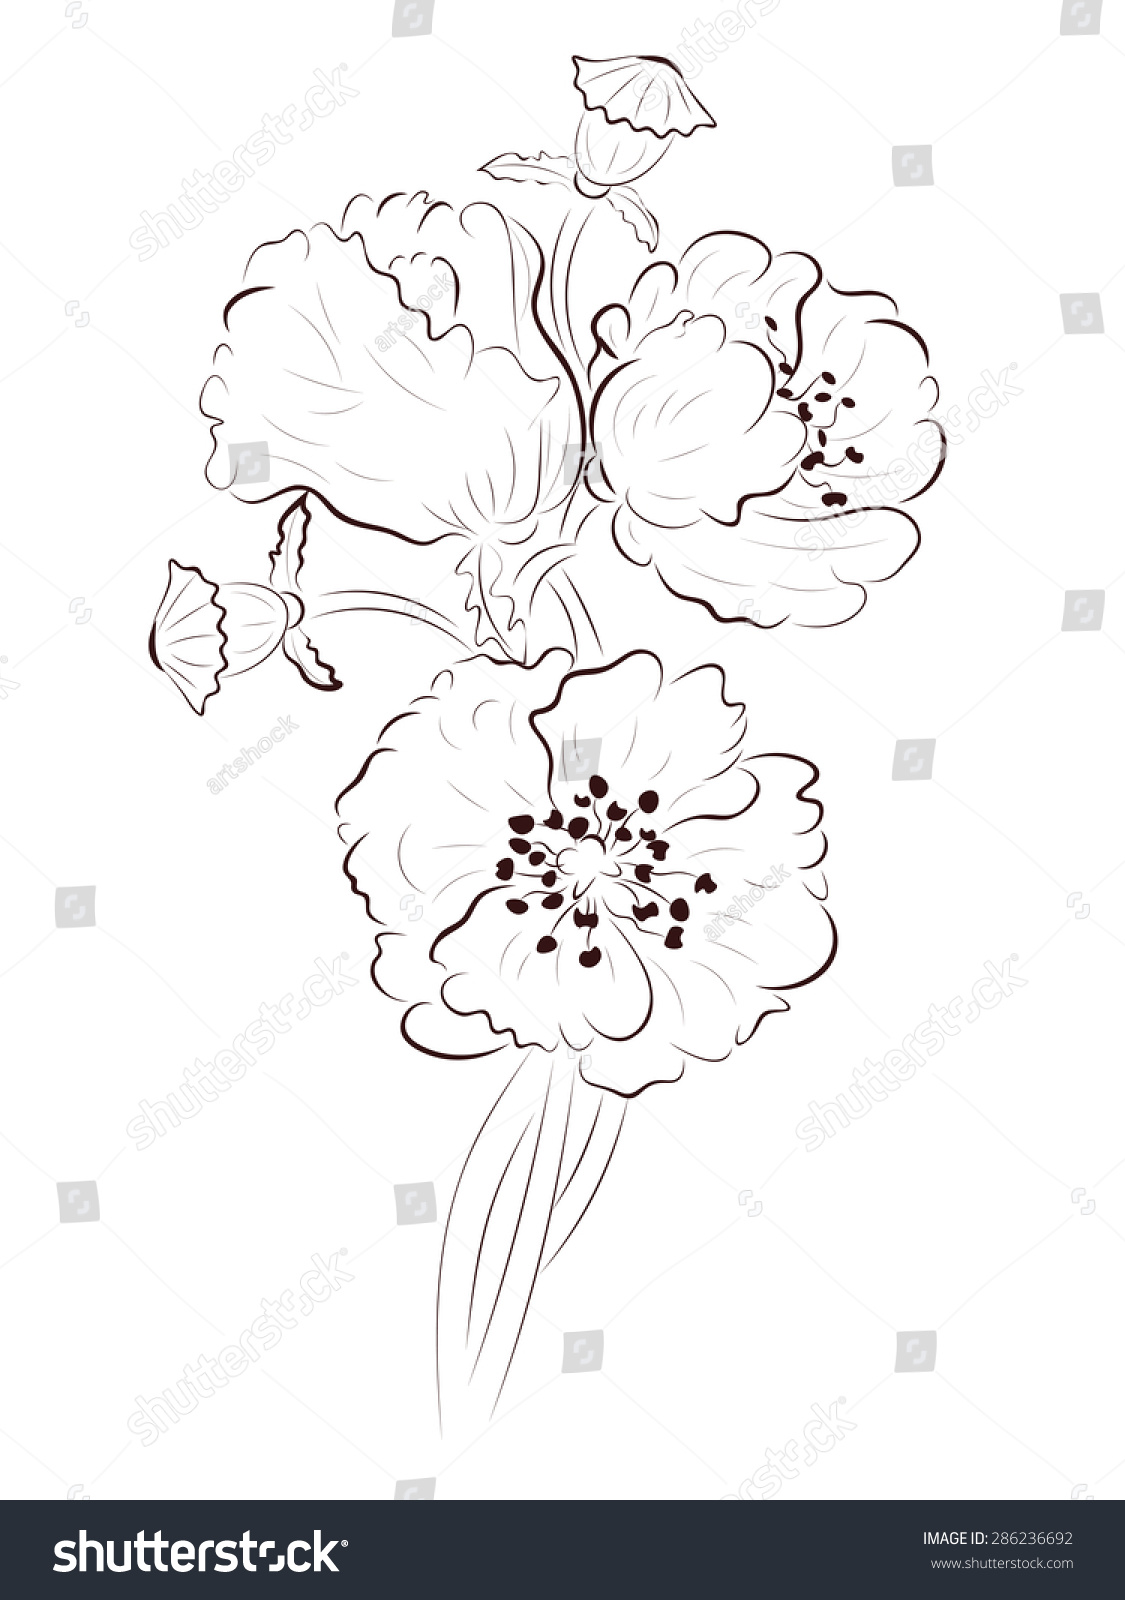 Hand drawing poppy flower simple line stock vector royalty free hand drawing poppy flower simple line art illustration mightylinksfo